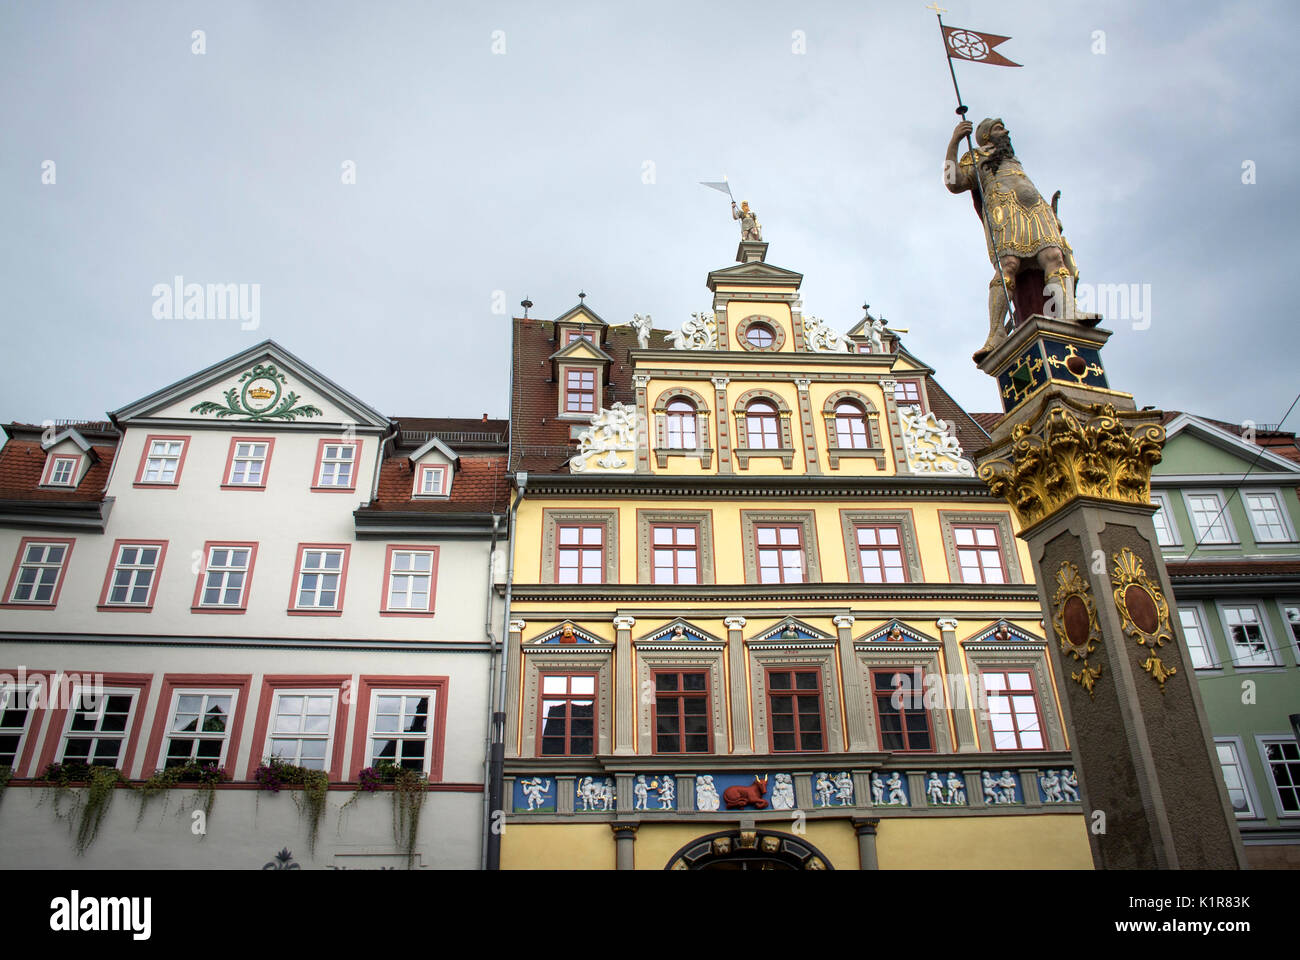 The Fischmarkt in the Old Town at Erfurt, Thuringia, Germany - Stock Image